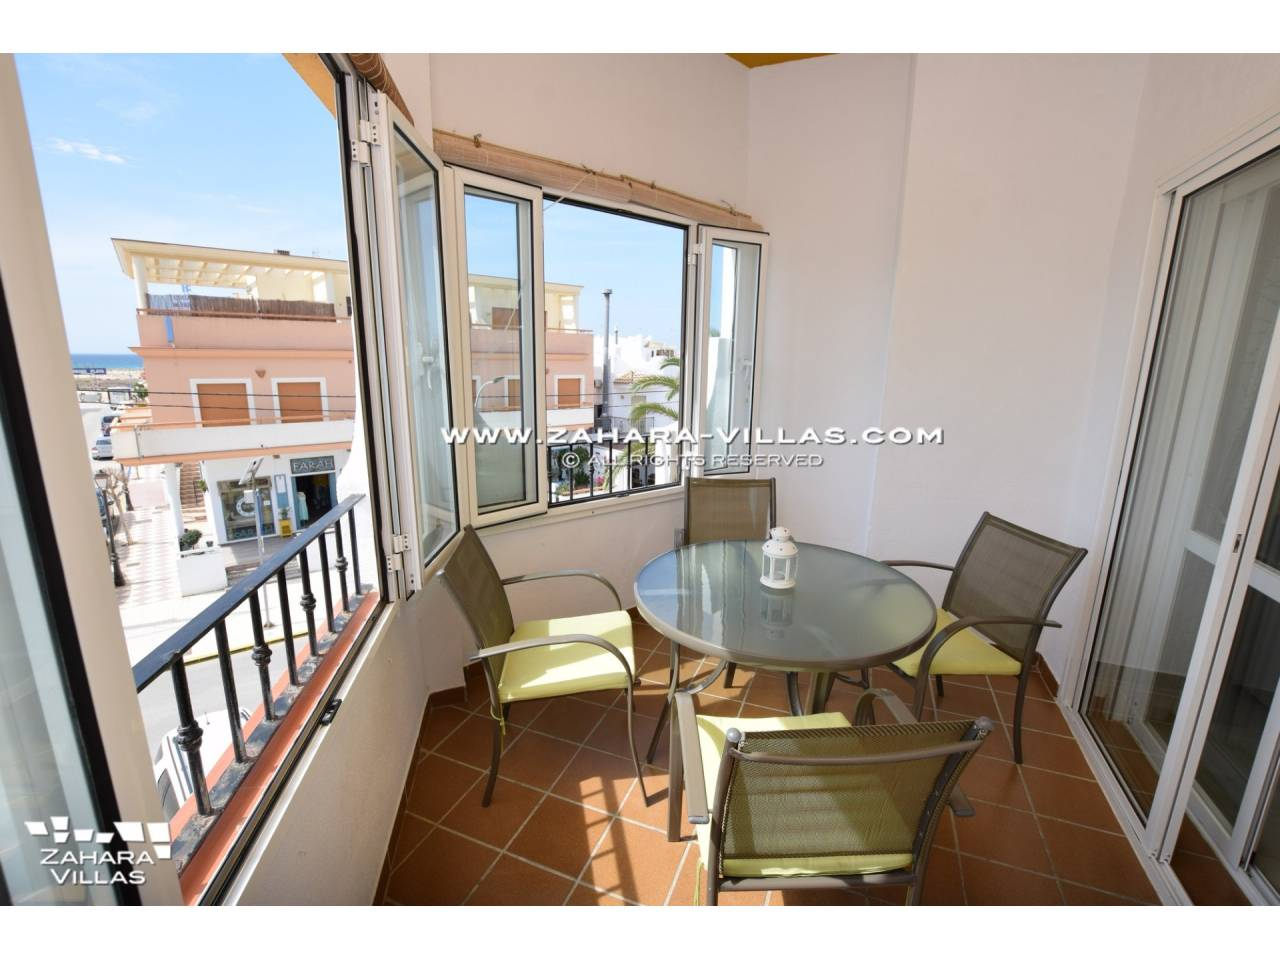 Imagen 3 de Amazing Apartment for sale in Zahara de los Atunes